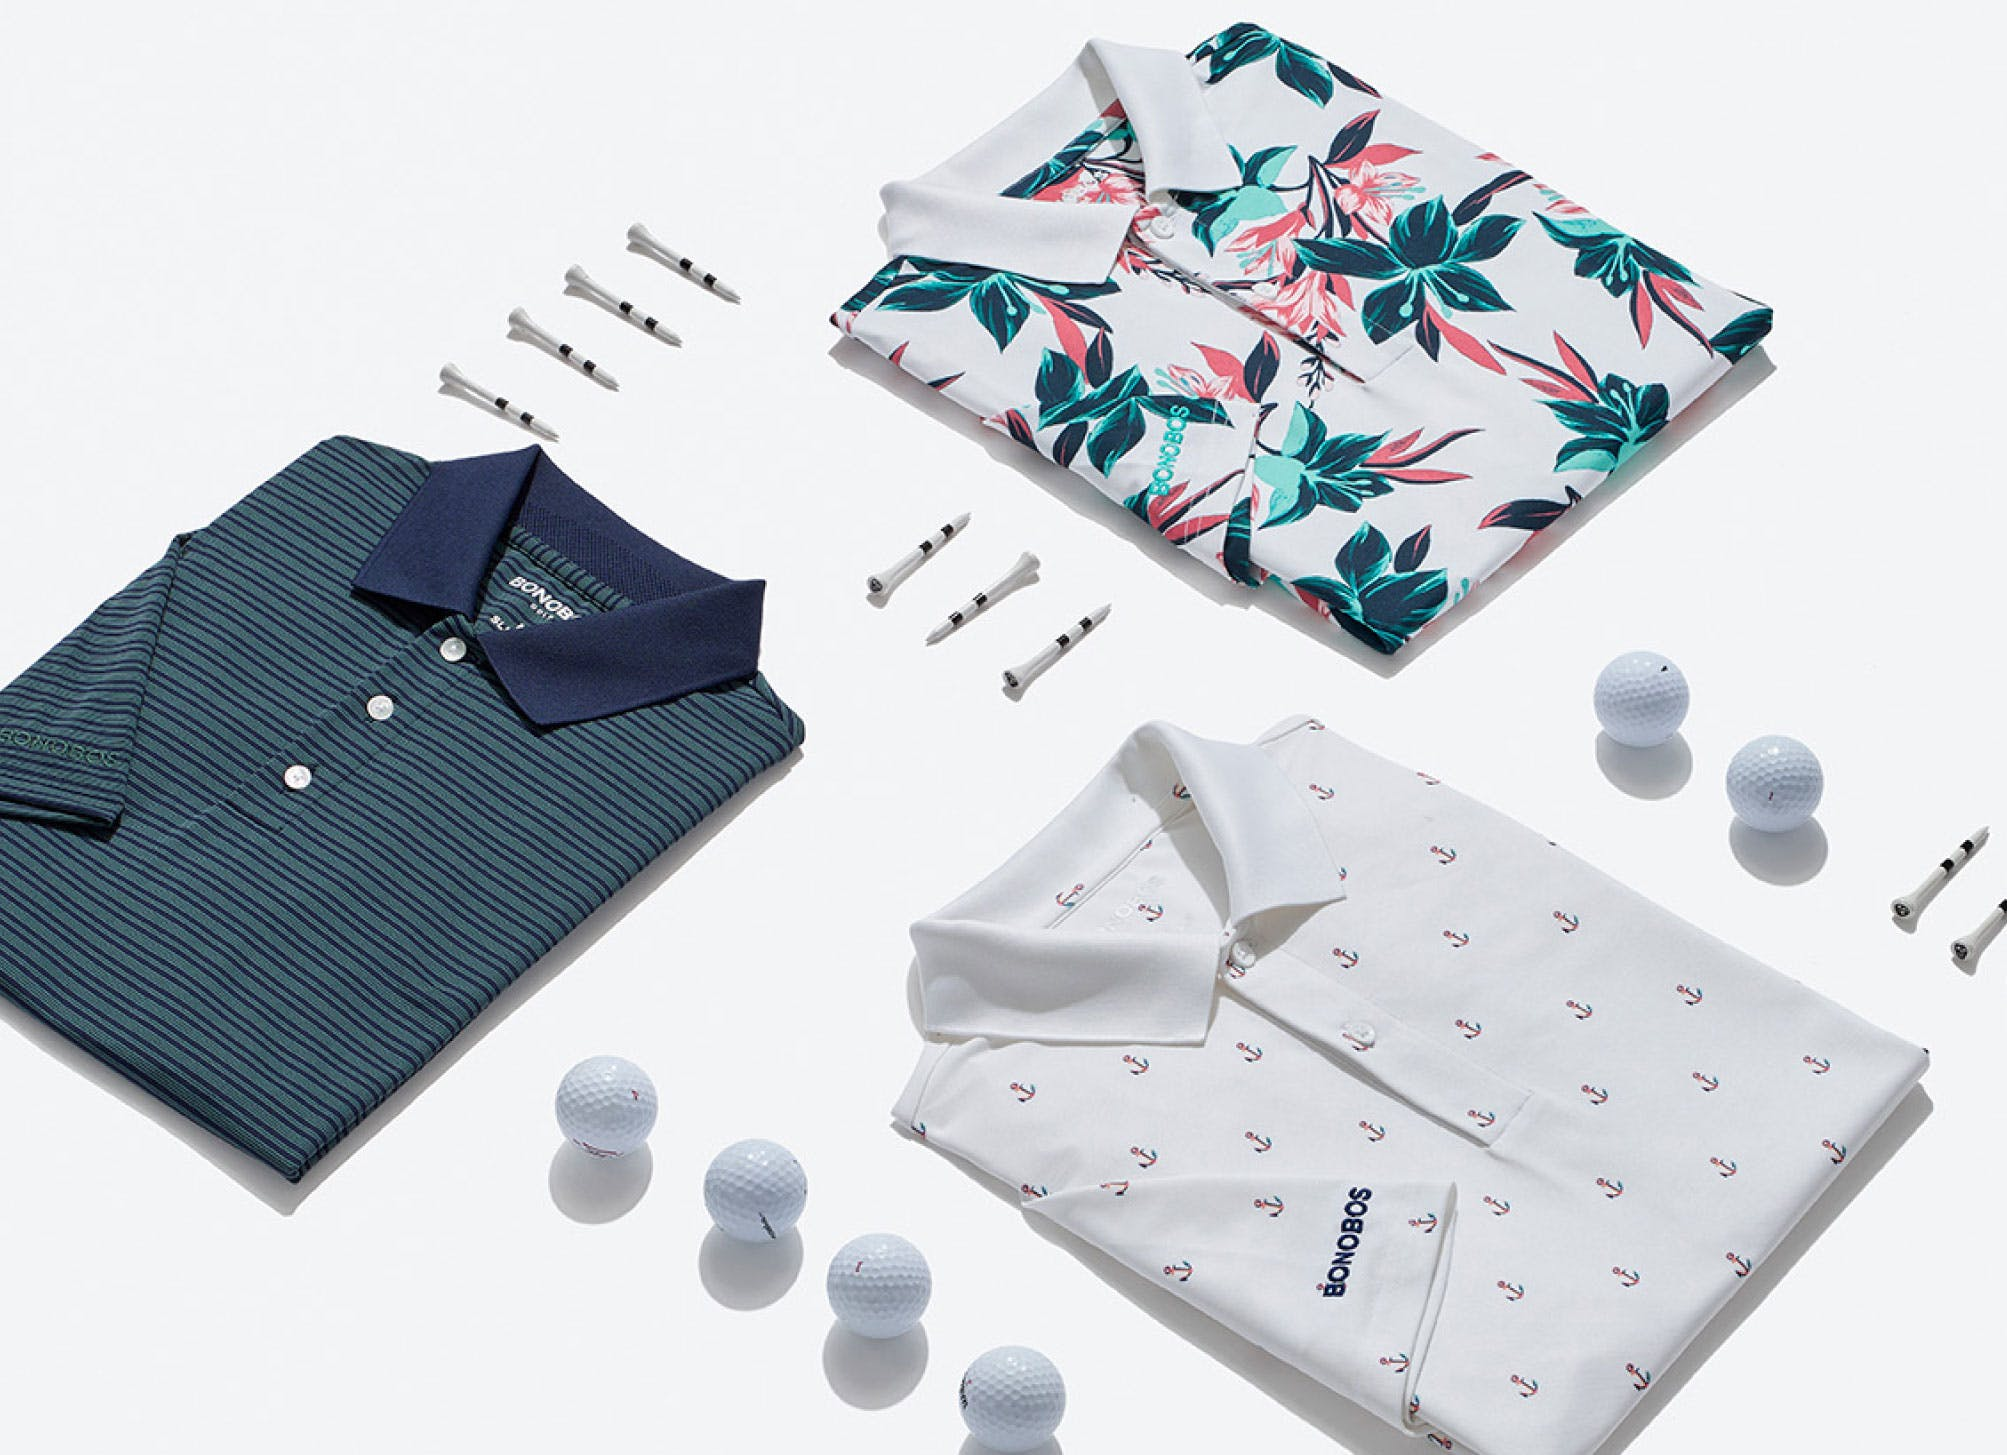 image of golf polos